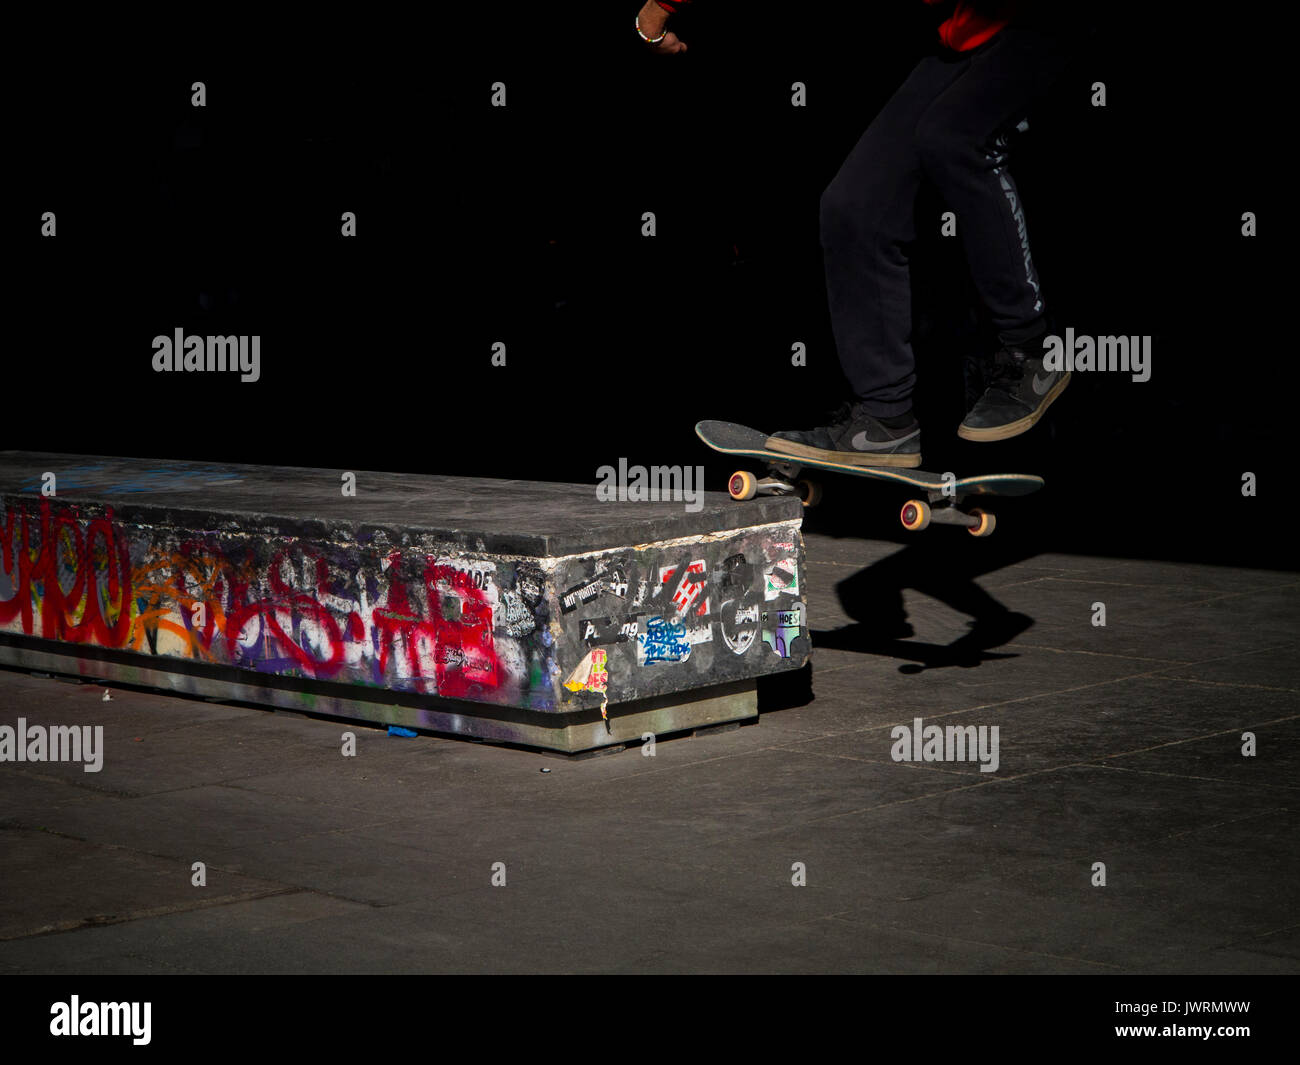 A skateboarder performs a trick in the evening sunshine - Stock Image